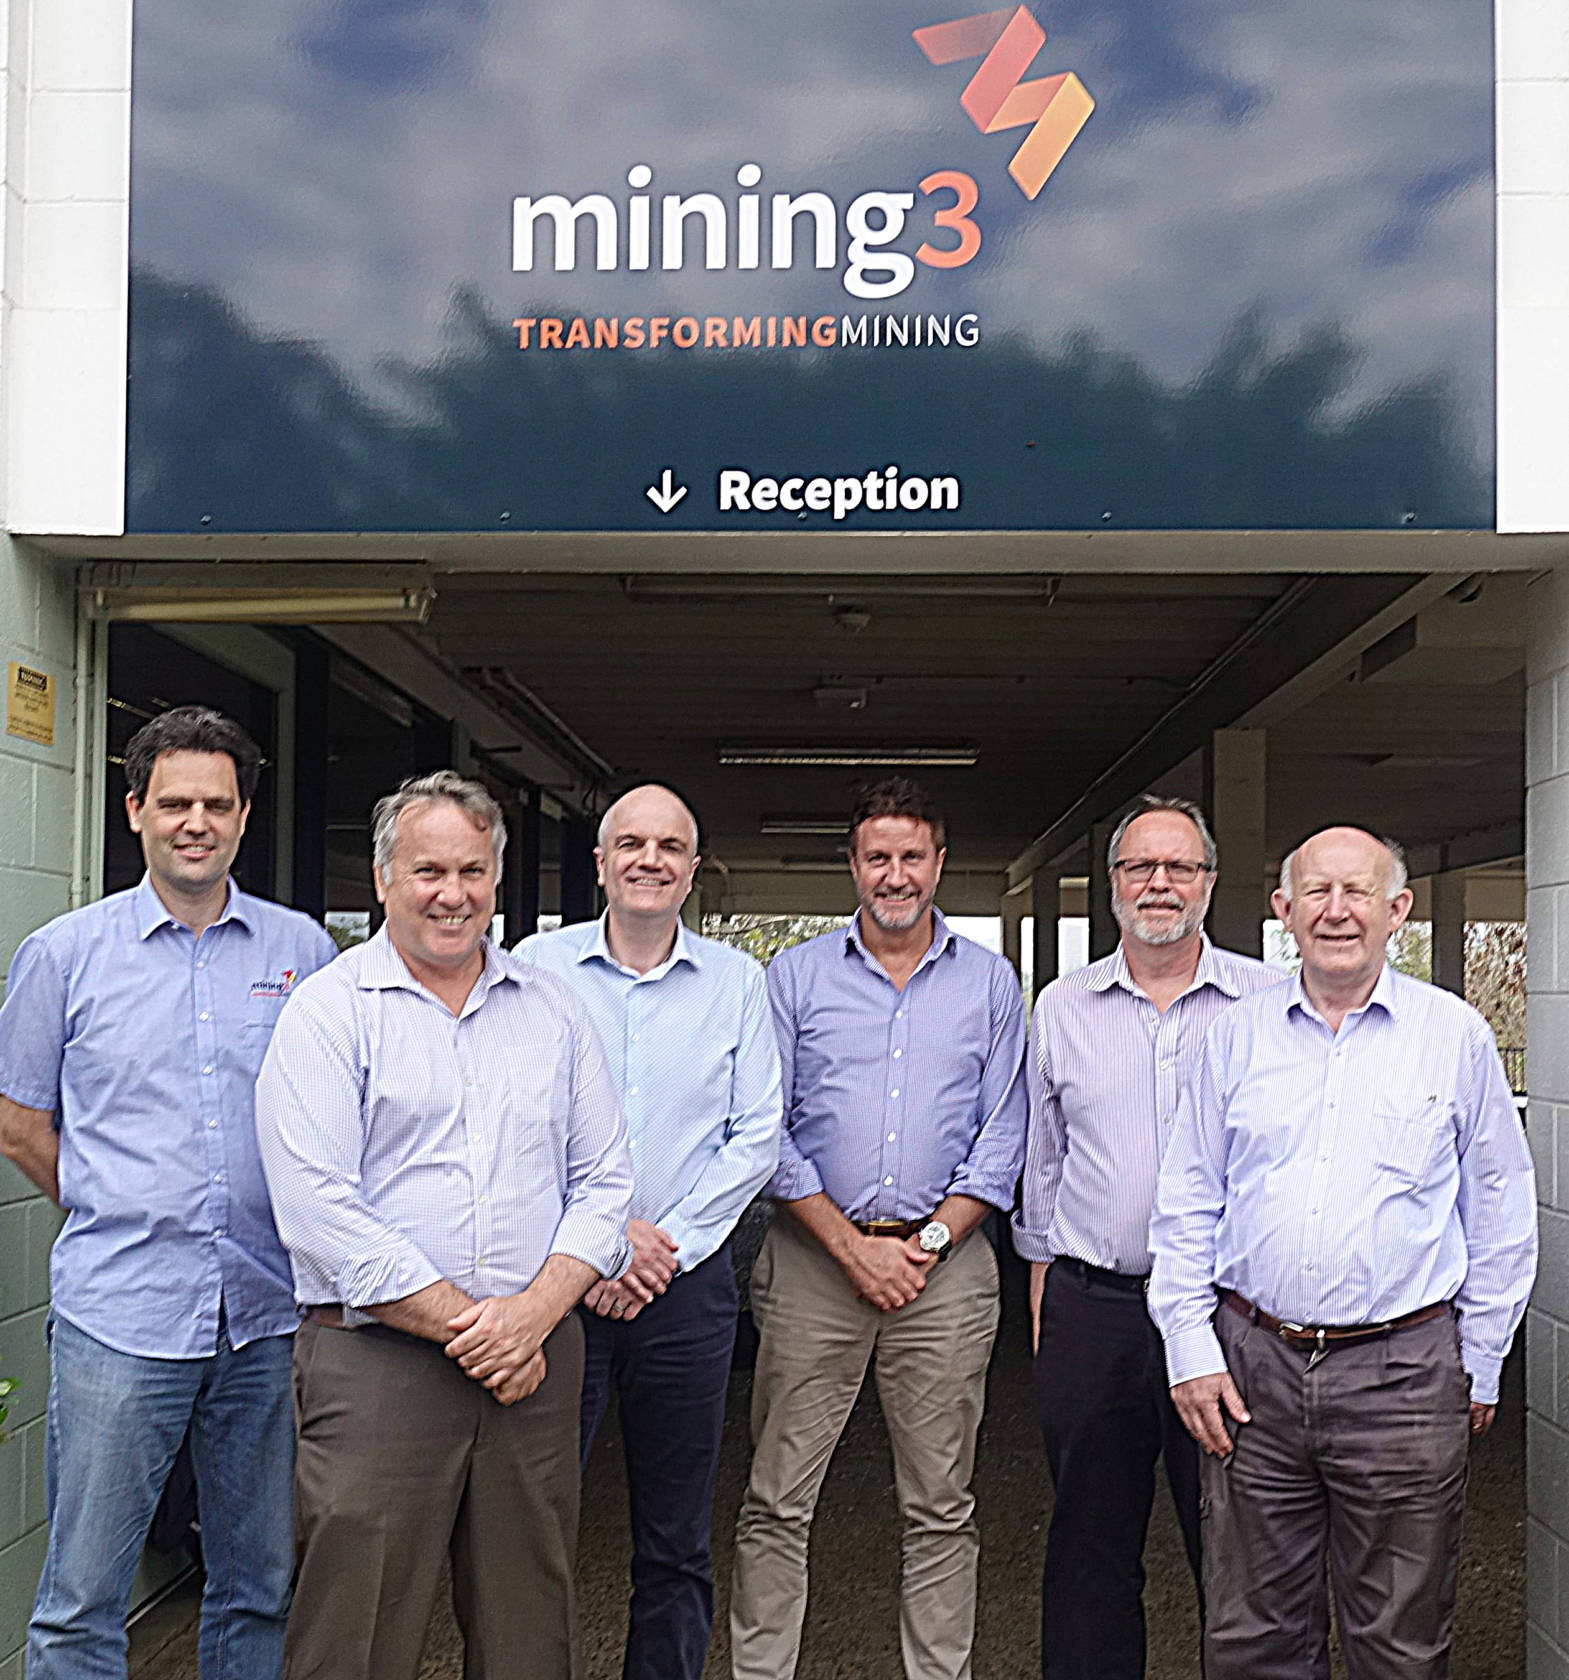 Ava Group announces strategic partnership with Mining3 to deliver Innovative Predictive Asset Maintenance Solutions to the Global Mining Sector